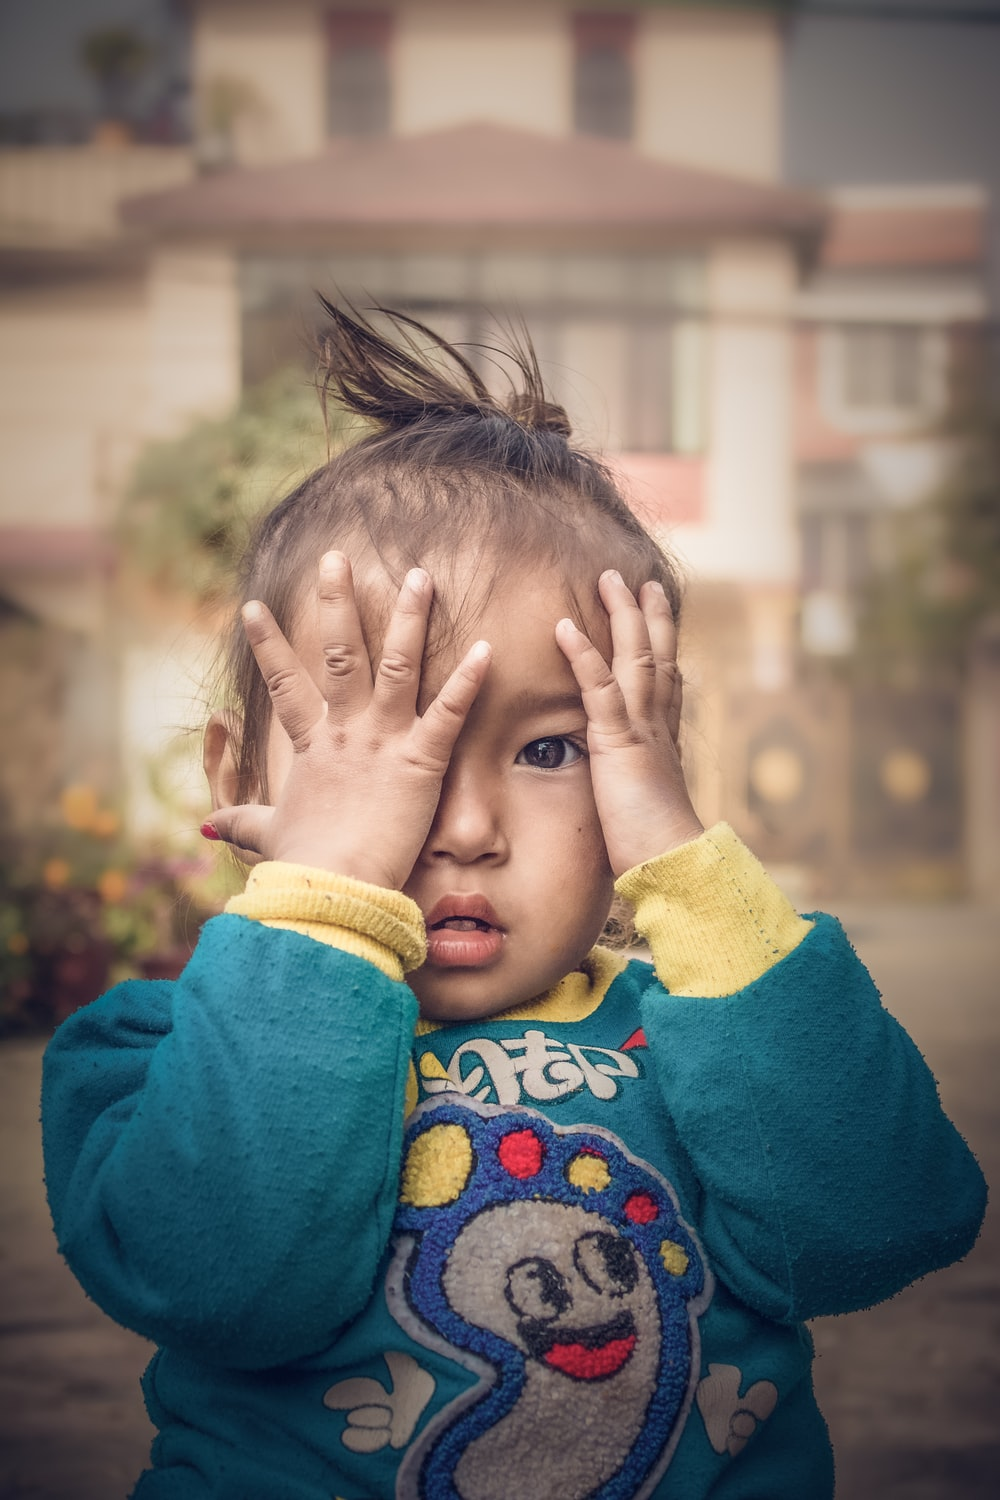 child in blue sweater covering face with yellow textile